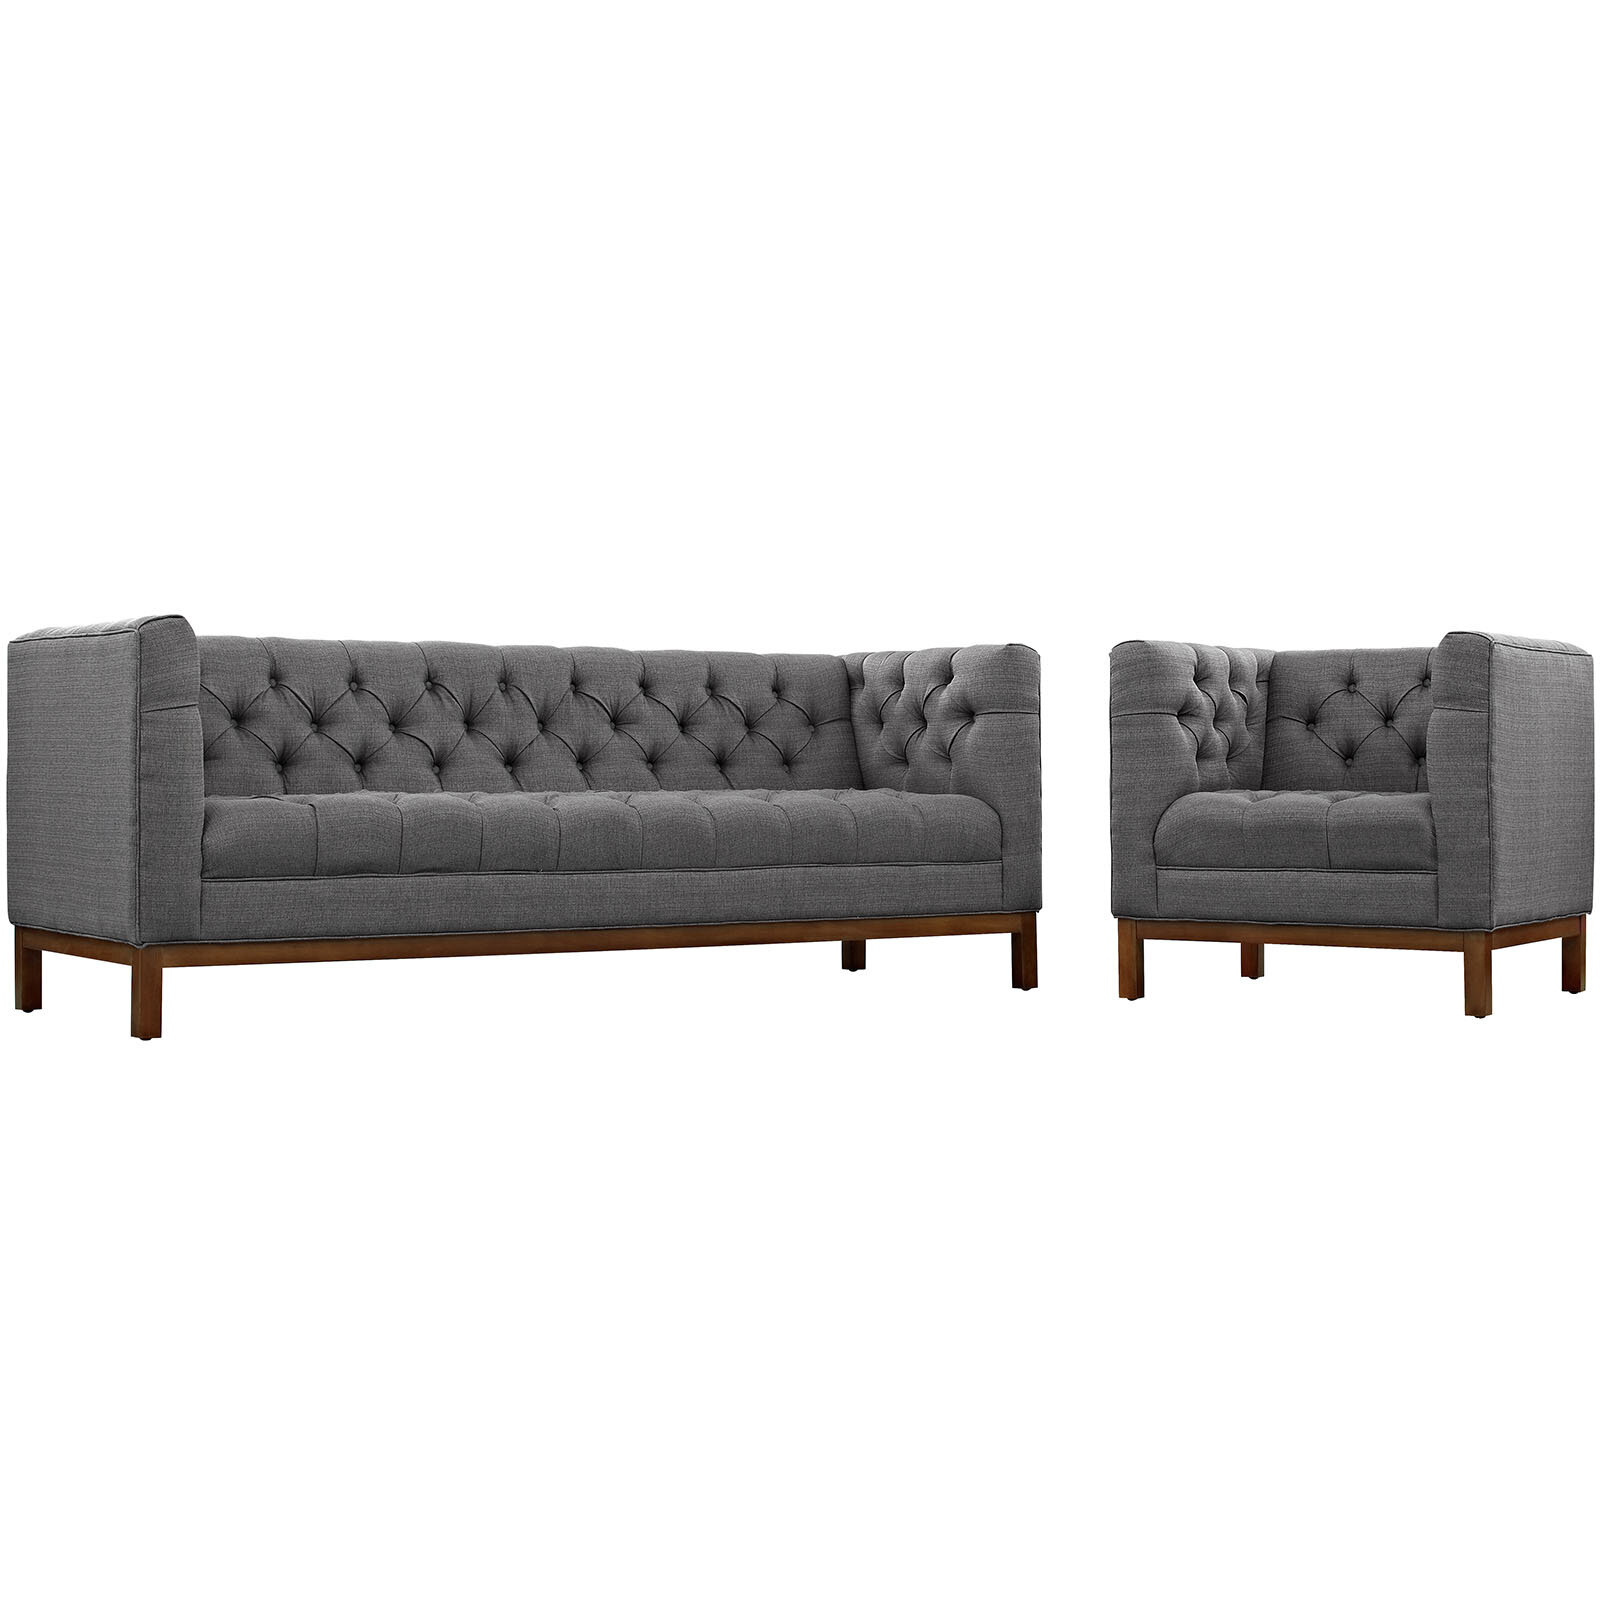 Dundas 2 Piece Standard Living Room Set Allmodern